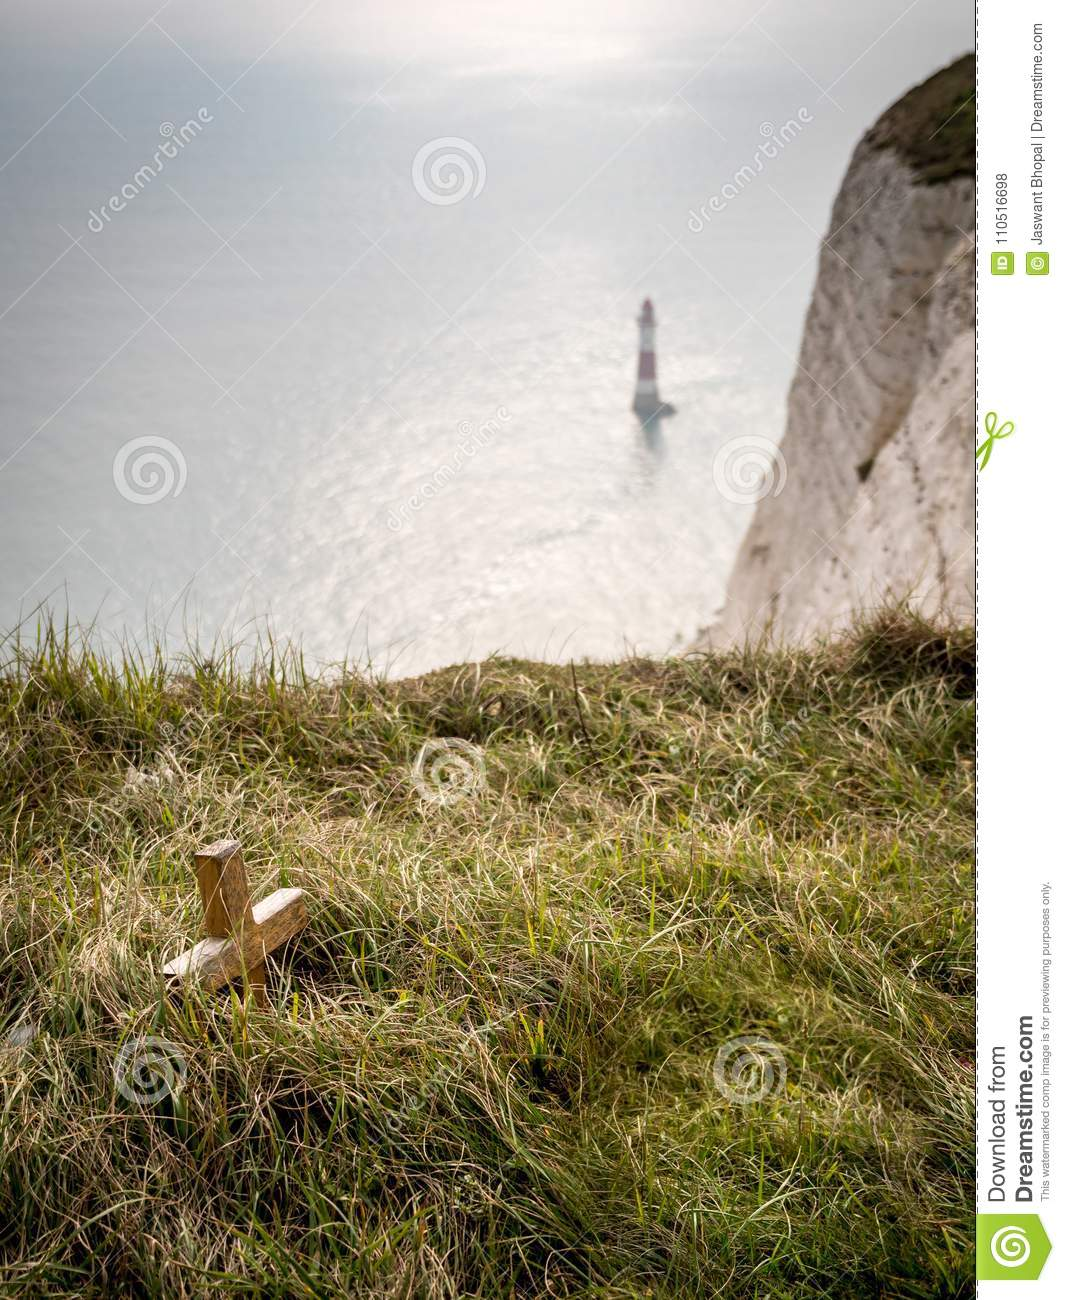 Beachy Head Suicide Spot And Memorial Stock Photo - Image ...